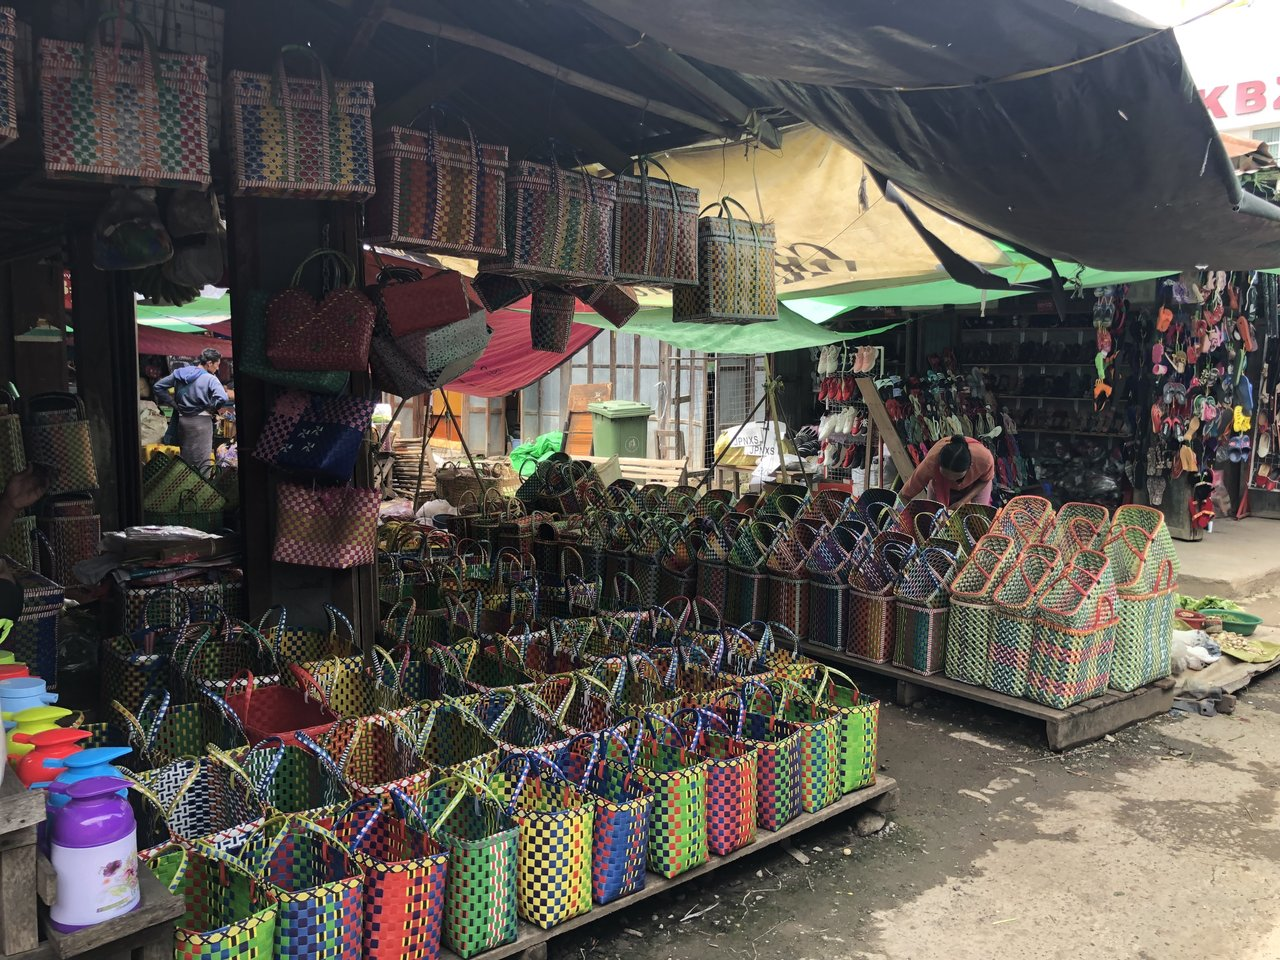 Starting the day with a visit to the Mingalar market! | Photo taken by Su-Lin T